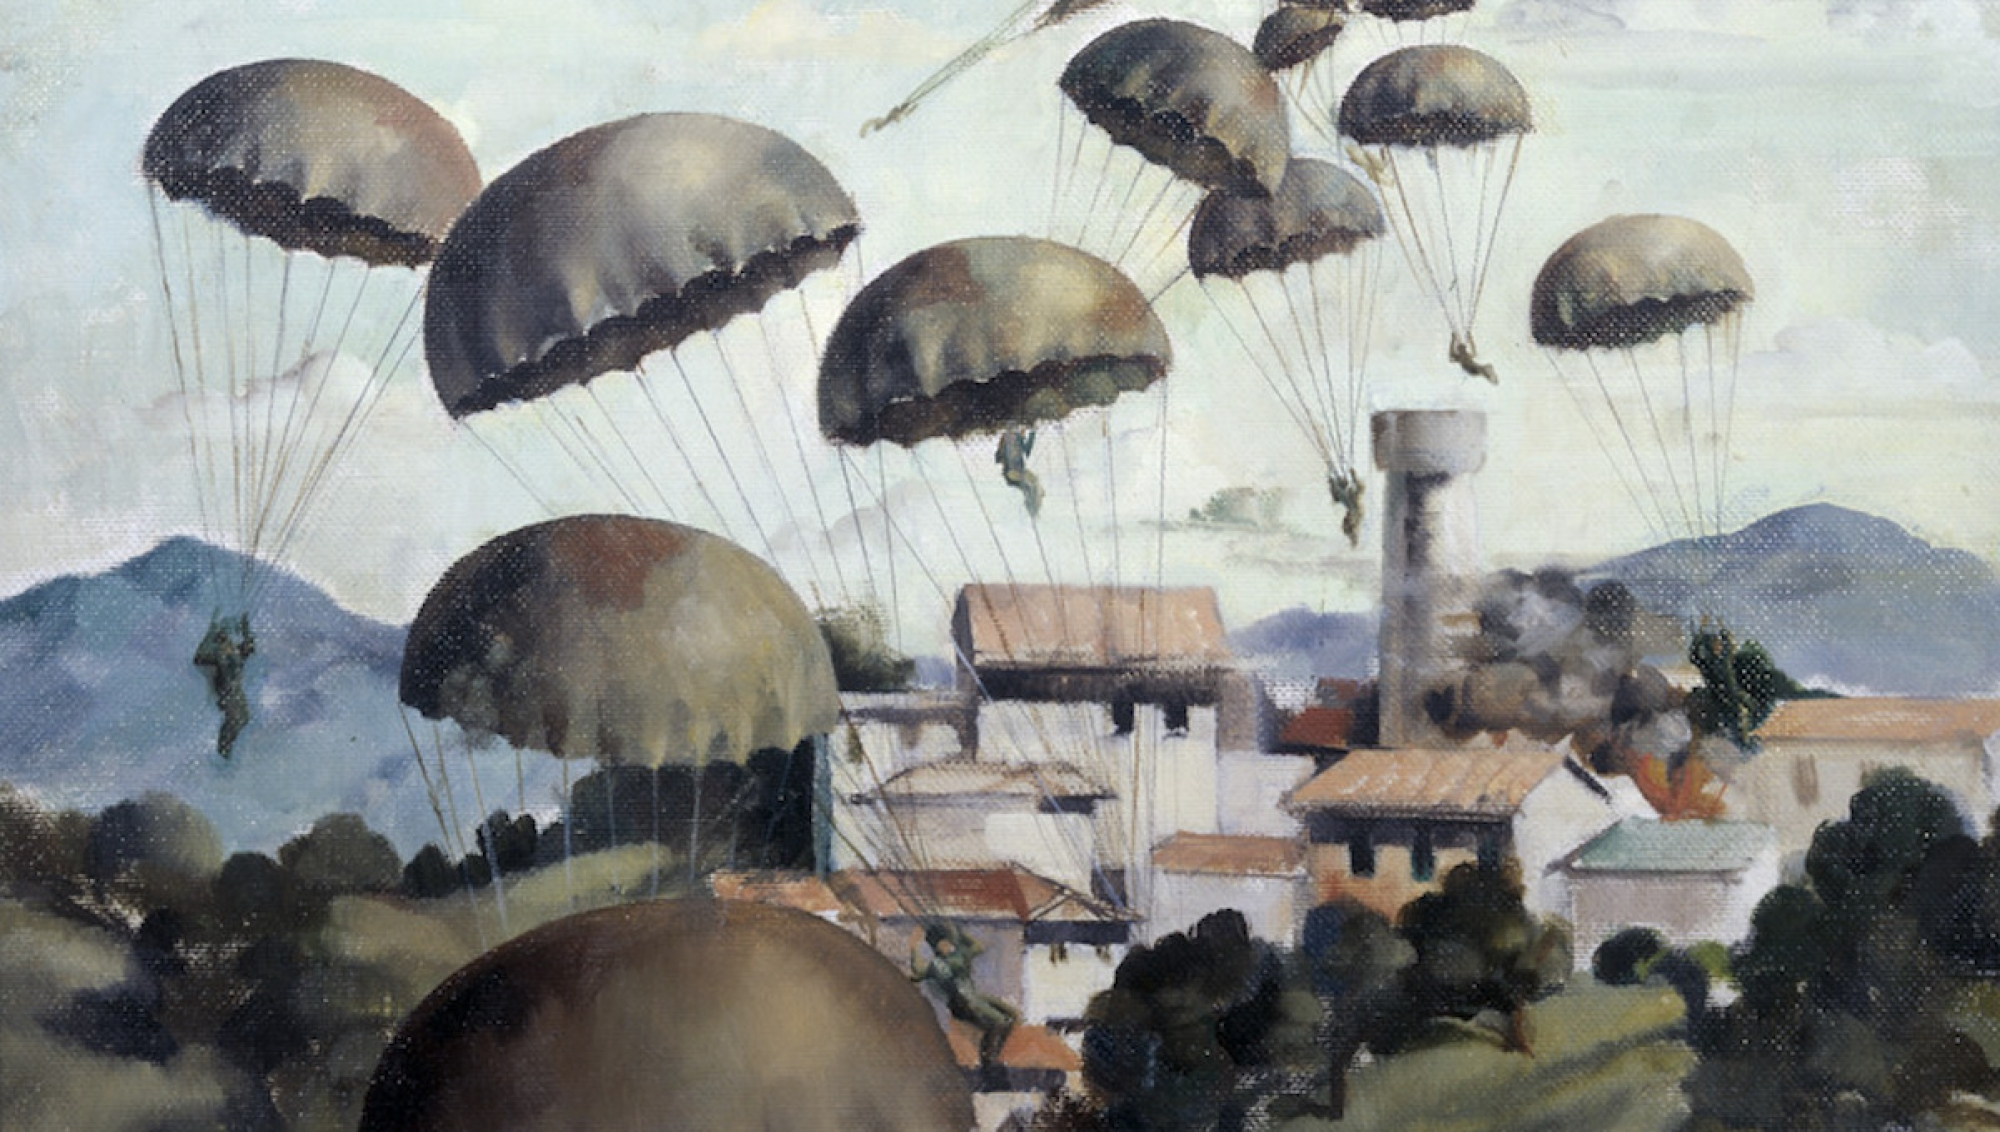 """Paraschutists landing on Galatsos"", Peter McIntyre, Courtesy of New Zealand Archives; Department of Internal Affairs, National Collection of War Art"